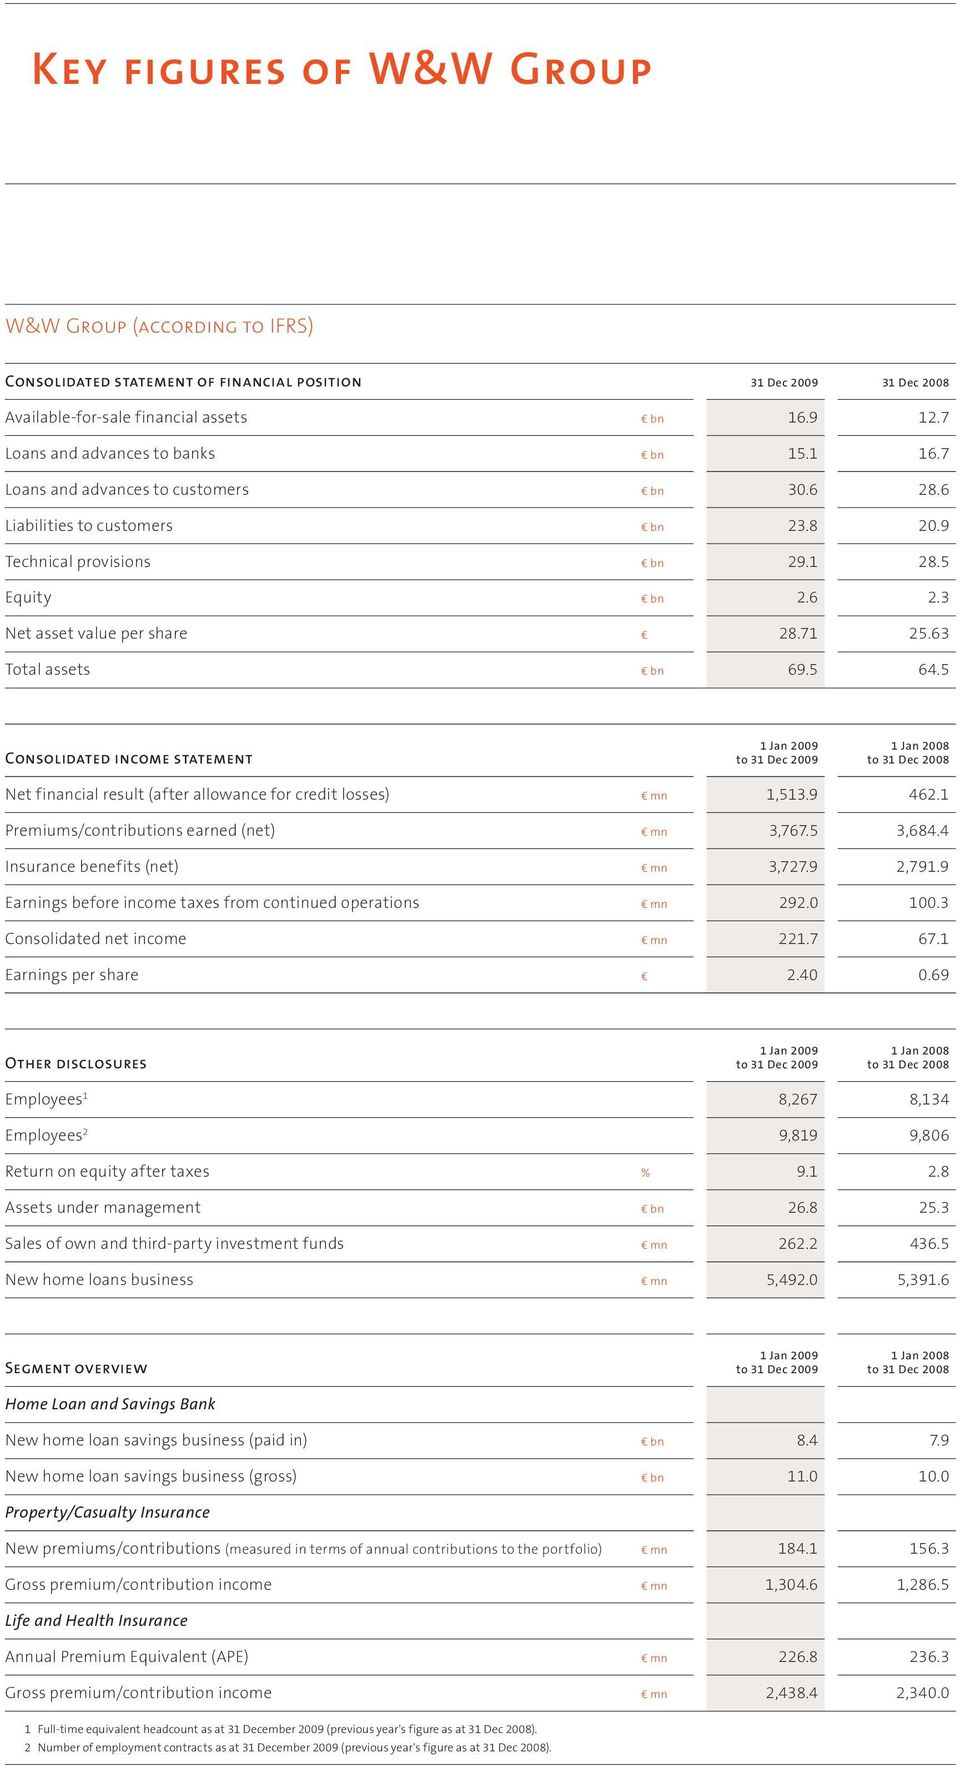 71 25.63 Total assets bn 69.5 64.5 CONSOLIDATED INCOME STATEMENT 1 Jan 2009 to 31 Dec 2009 1 Jan 2008 to 31 Dec 2008 Net financial result (after allowance for credit losses) mn 1,513.9 462.